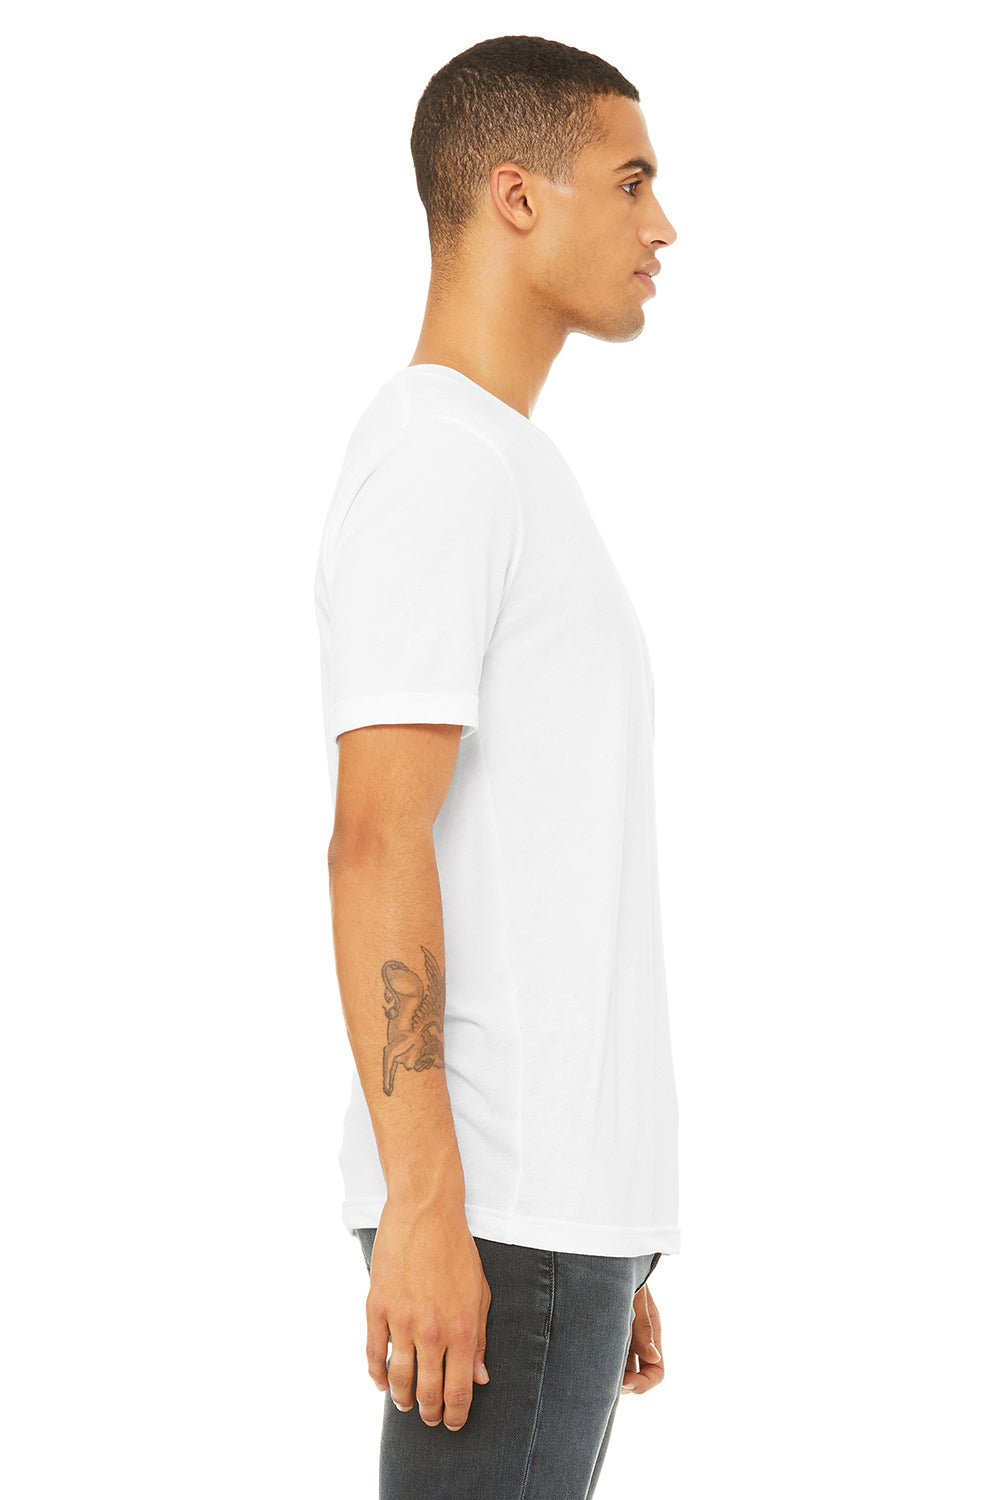 Bella + Canvas 3415C Mens Short Sleeve V-Neck T-Shirt White Side